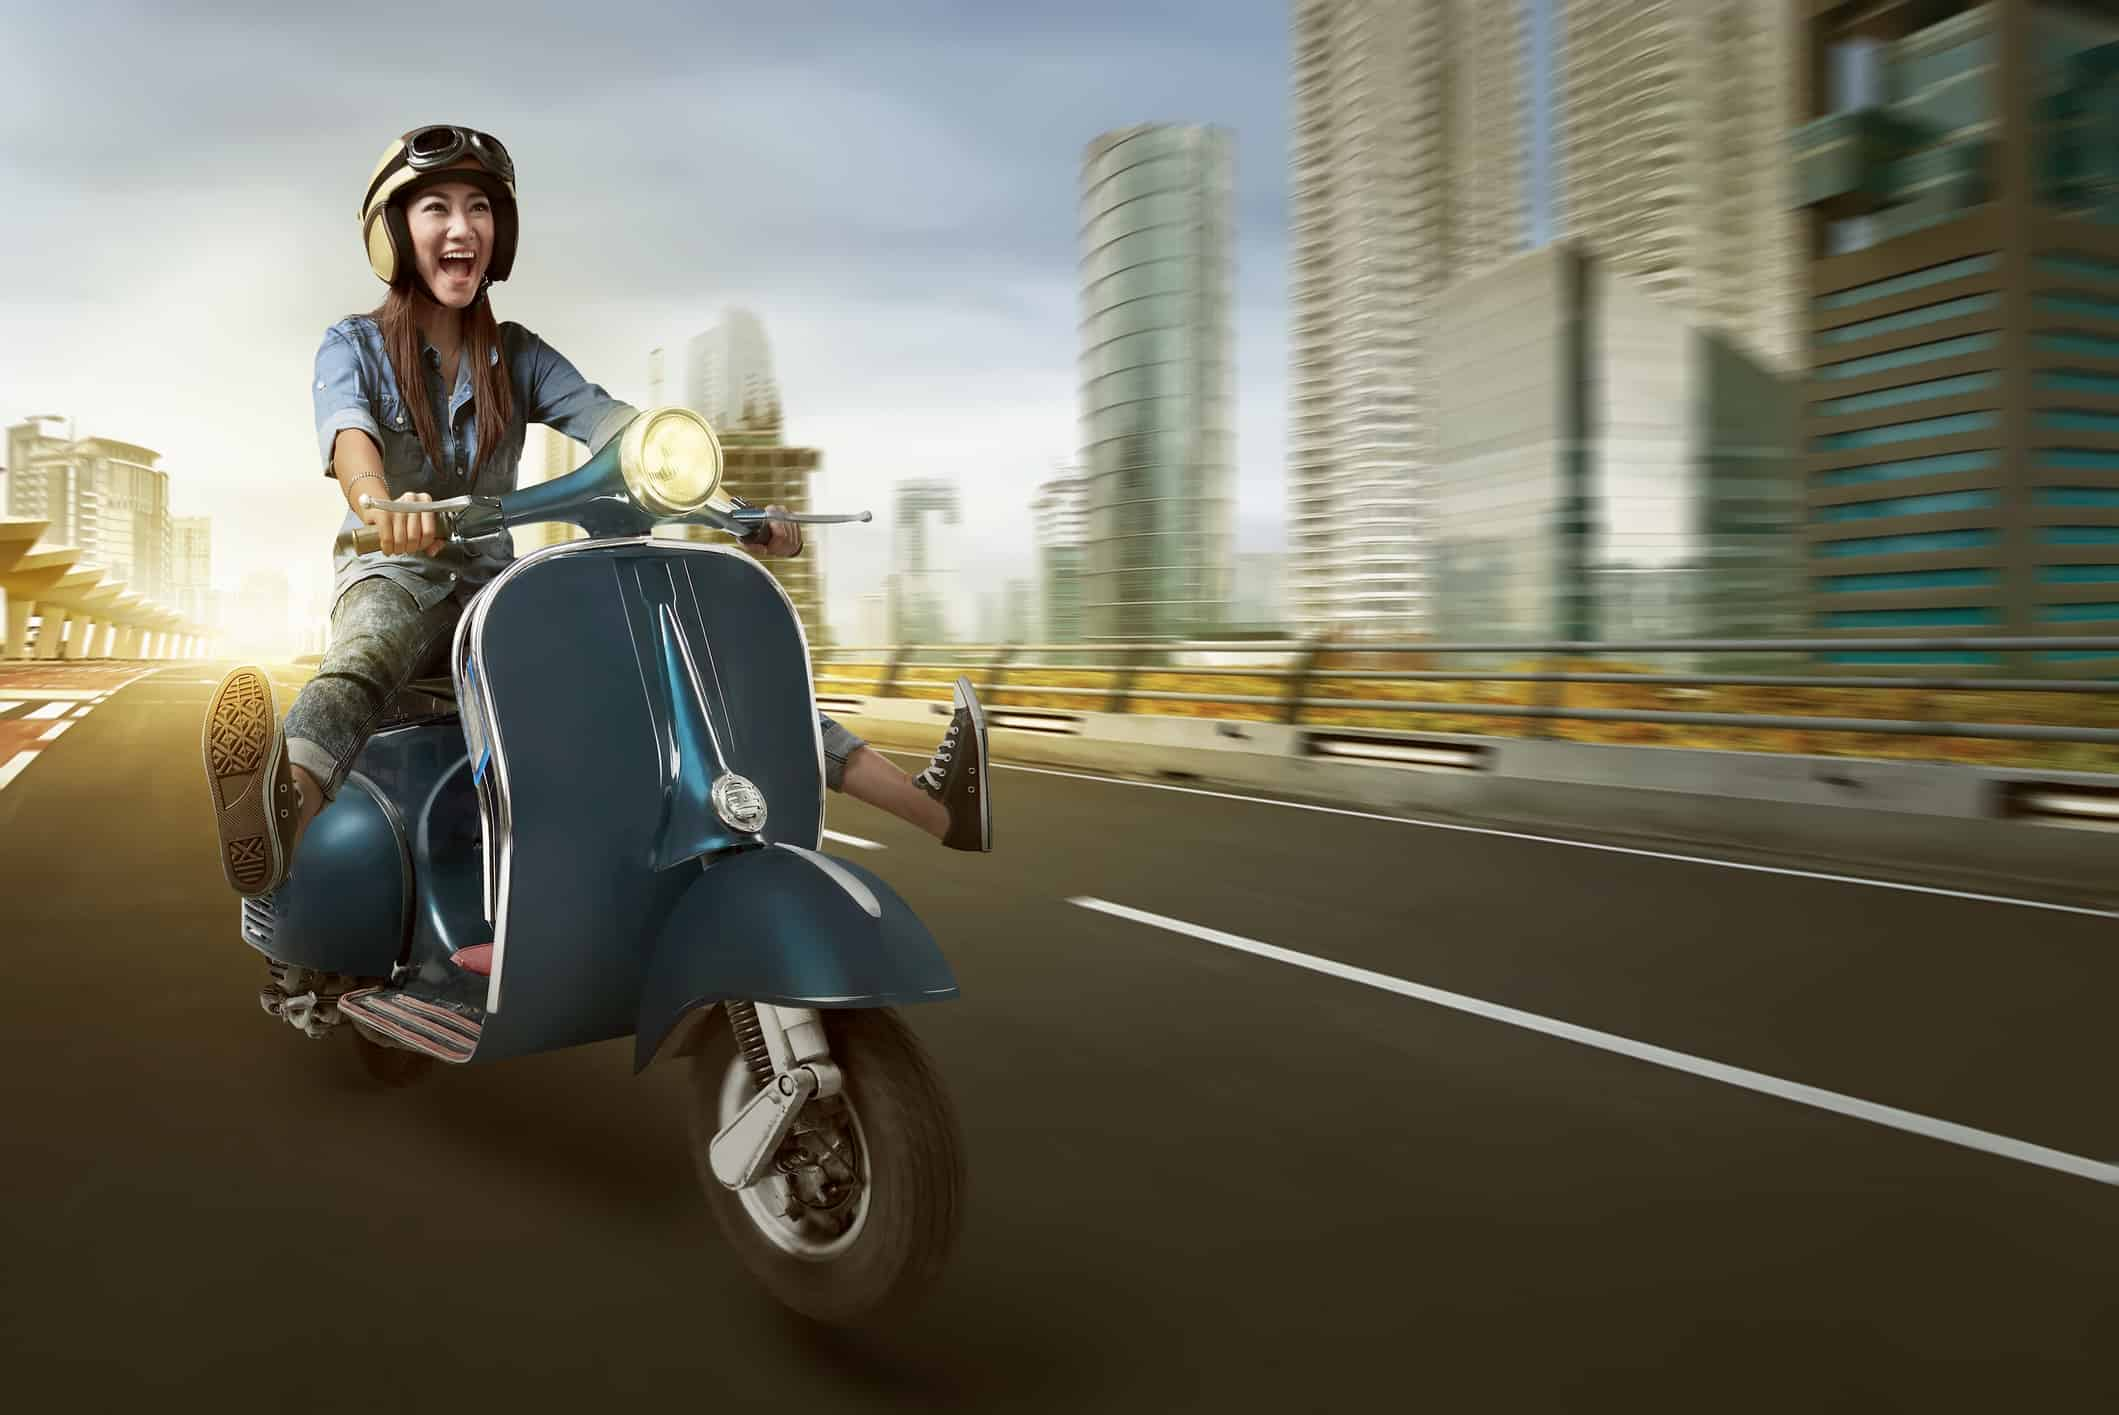 Woman riding motorcycle with big grin on face